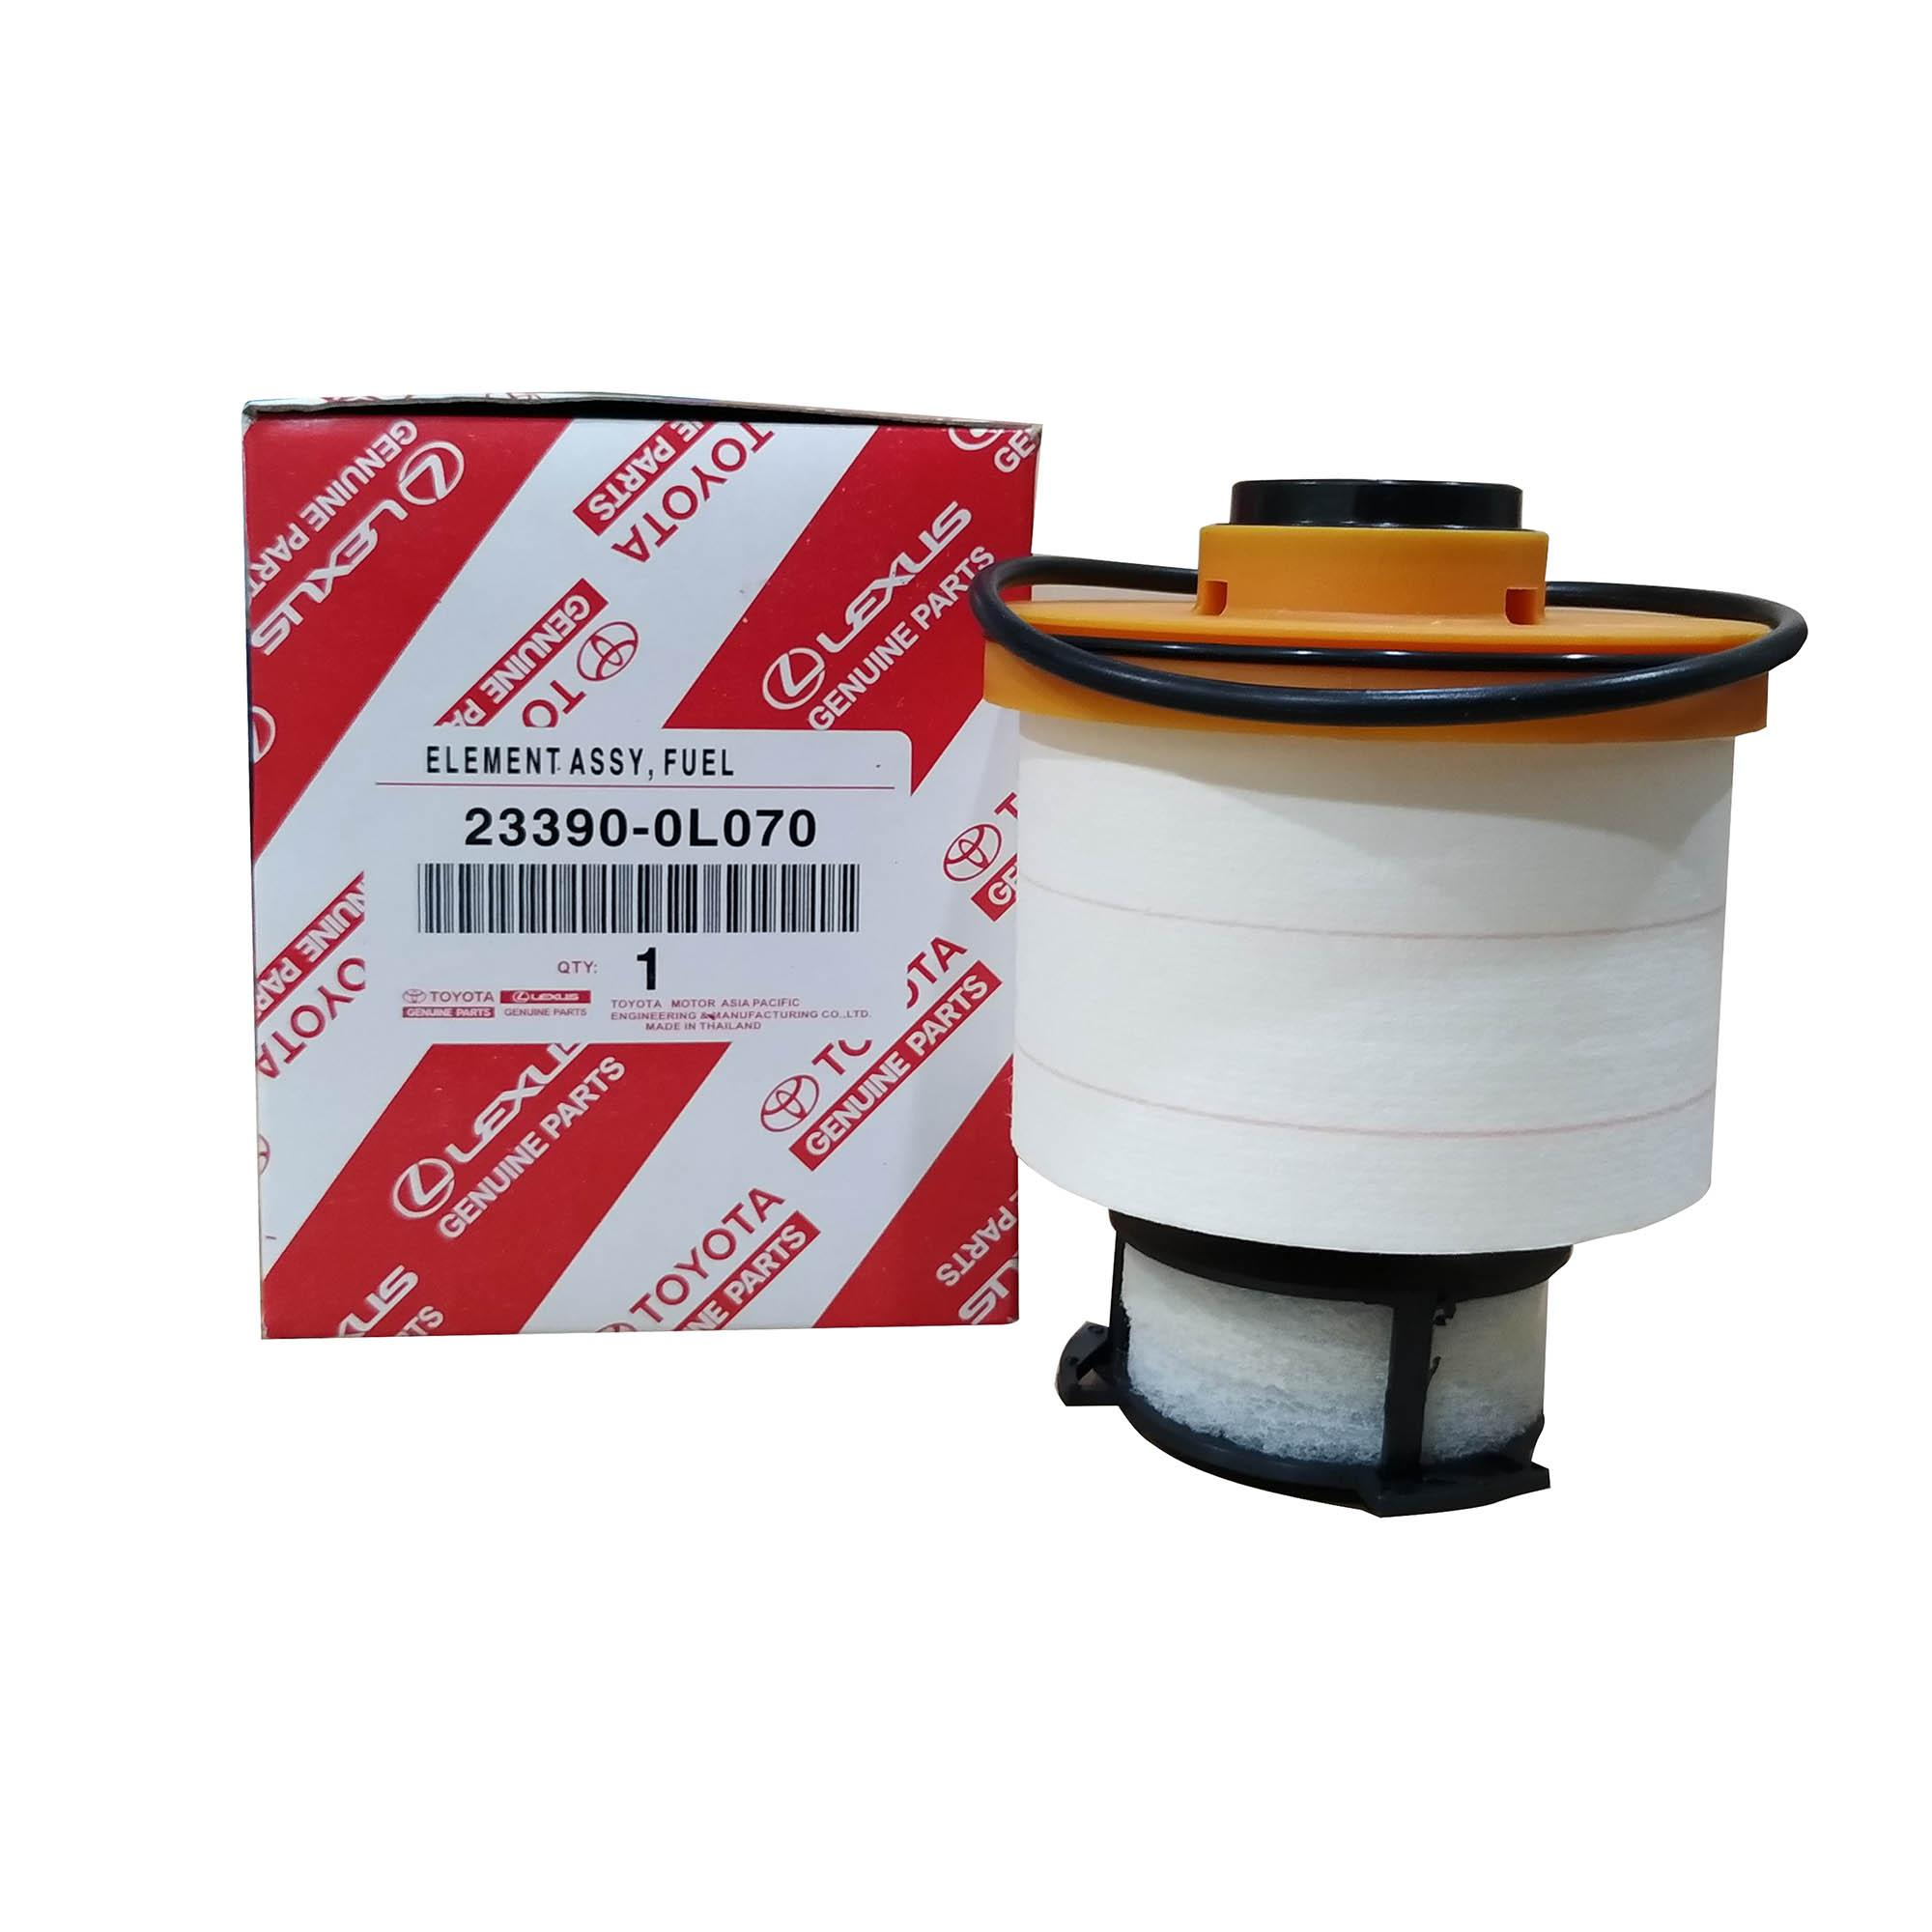 toyota genuine parts fuel filter 23390-0l070 for toyota fortuner ( 2016 - )  /